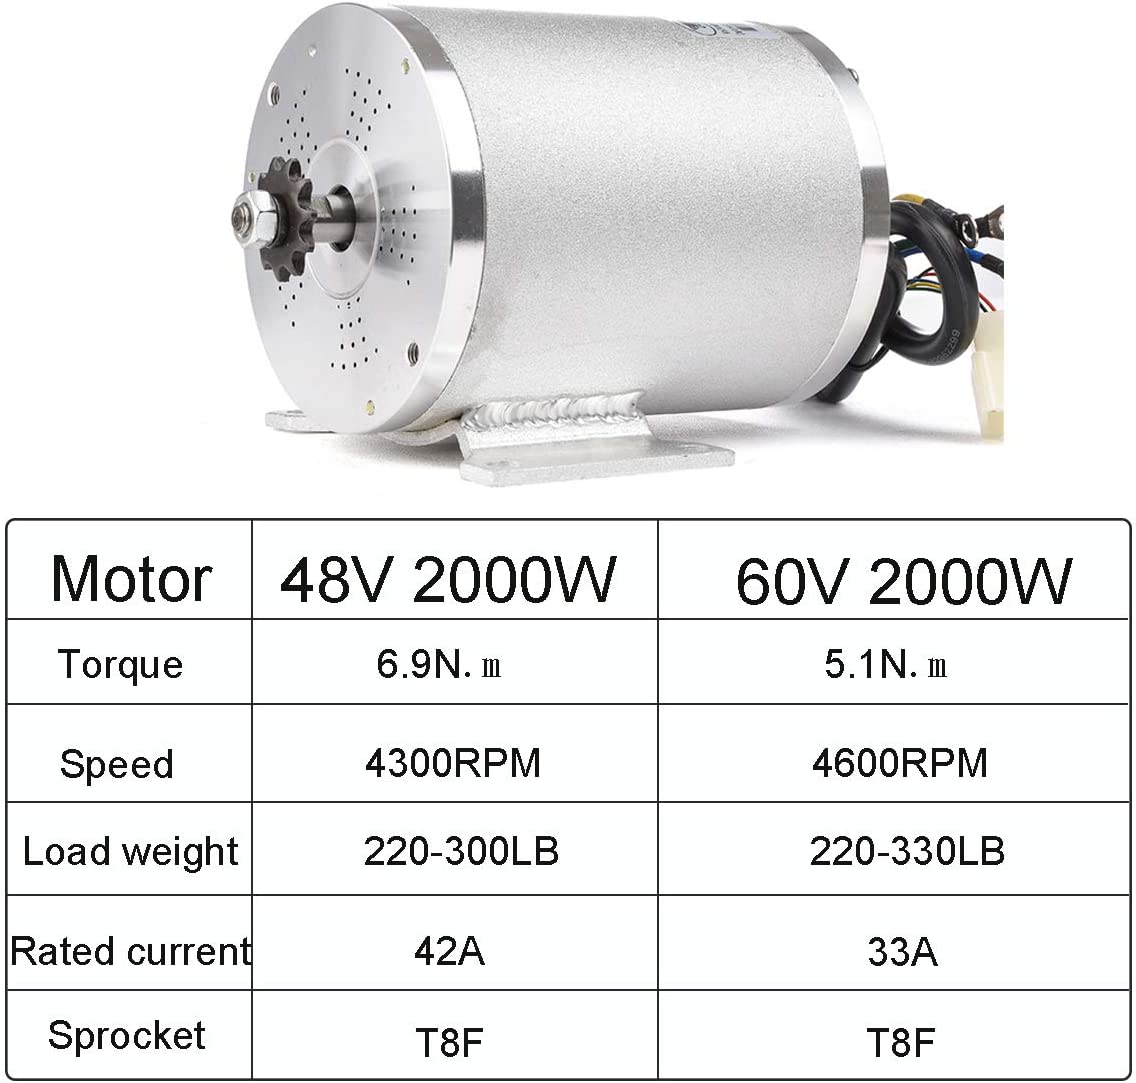 2000W Electric Motor 48V 60V Electric Scooter Conversion Kit High Speed Engine Motor with Brushless DC Controller Pedal Accelerator LCD Throttle T8F Chain for Go Kart ATV Dirt Motorcycle 48V 2000W